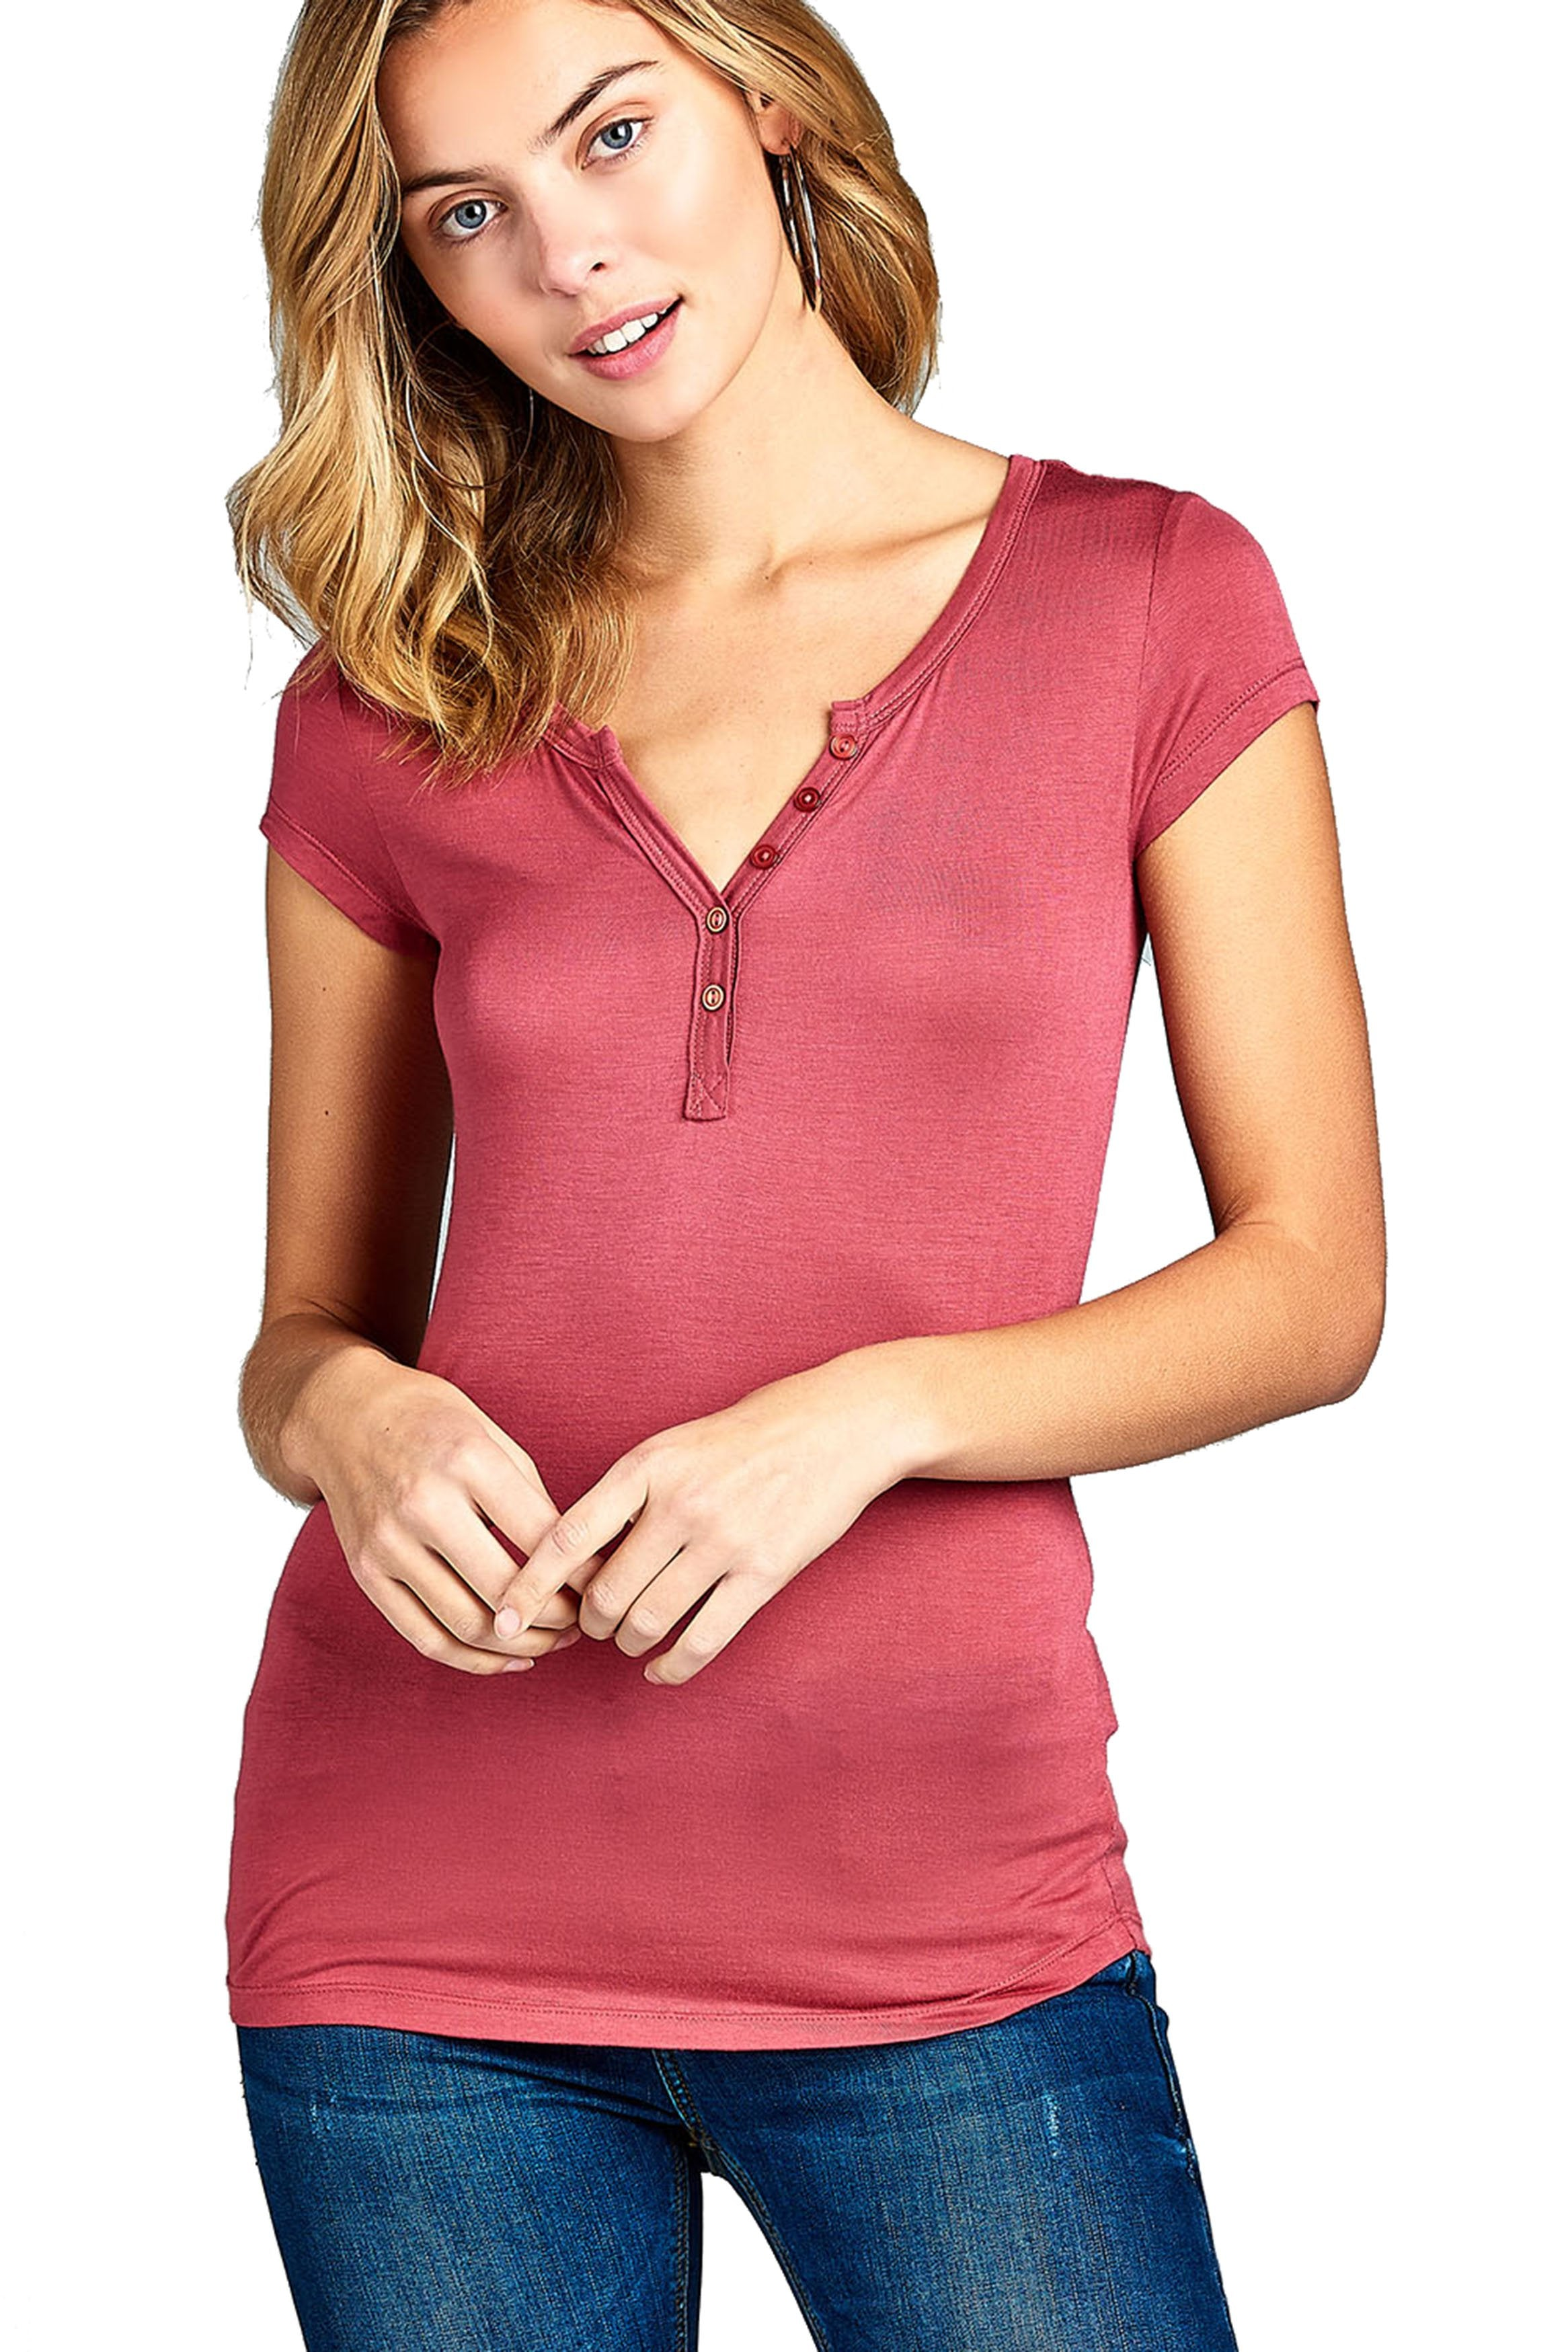 Women's Short Sleeve Button Placket Front Basic Casual Top